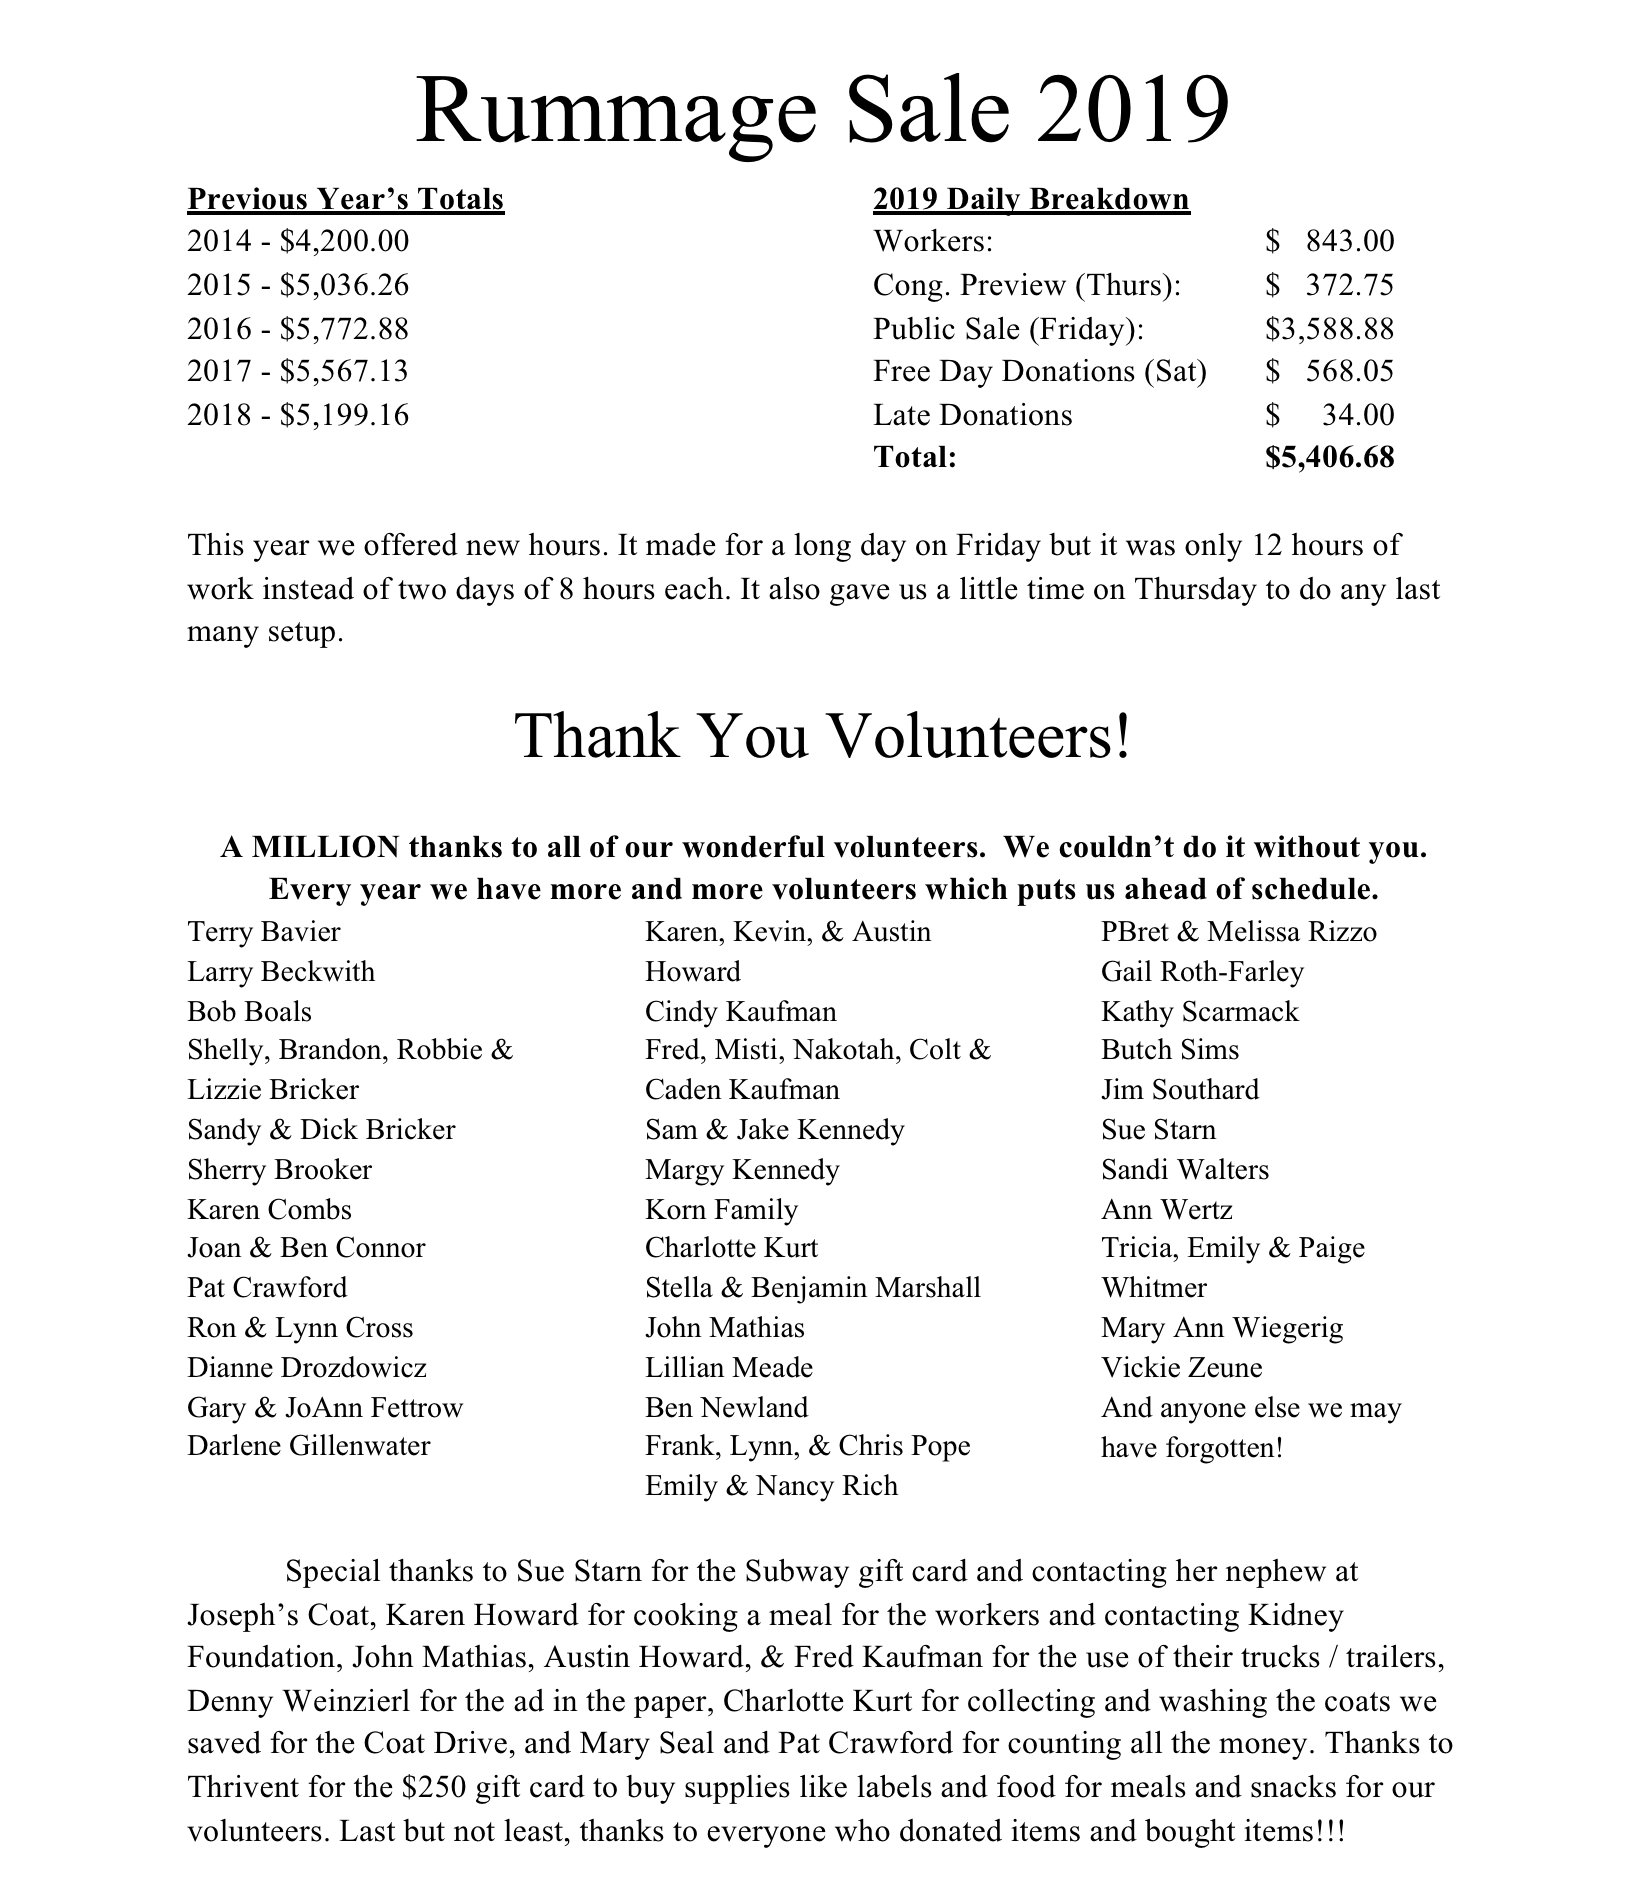 2019 Rummage Sale Results